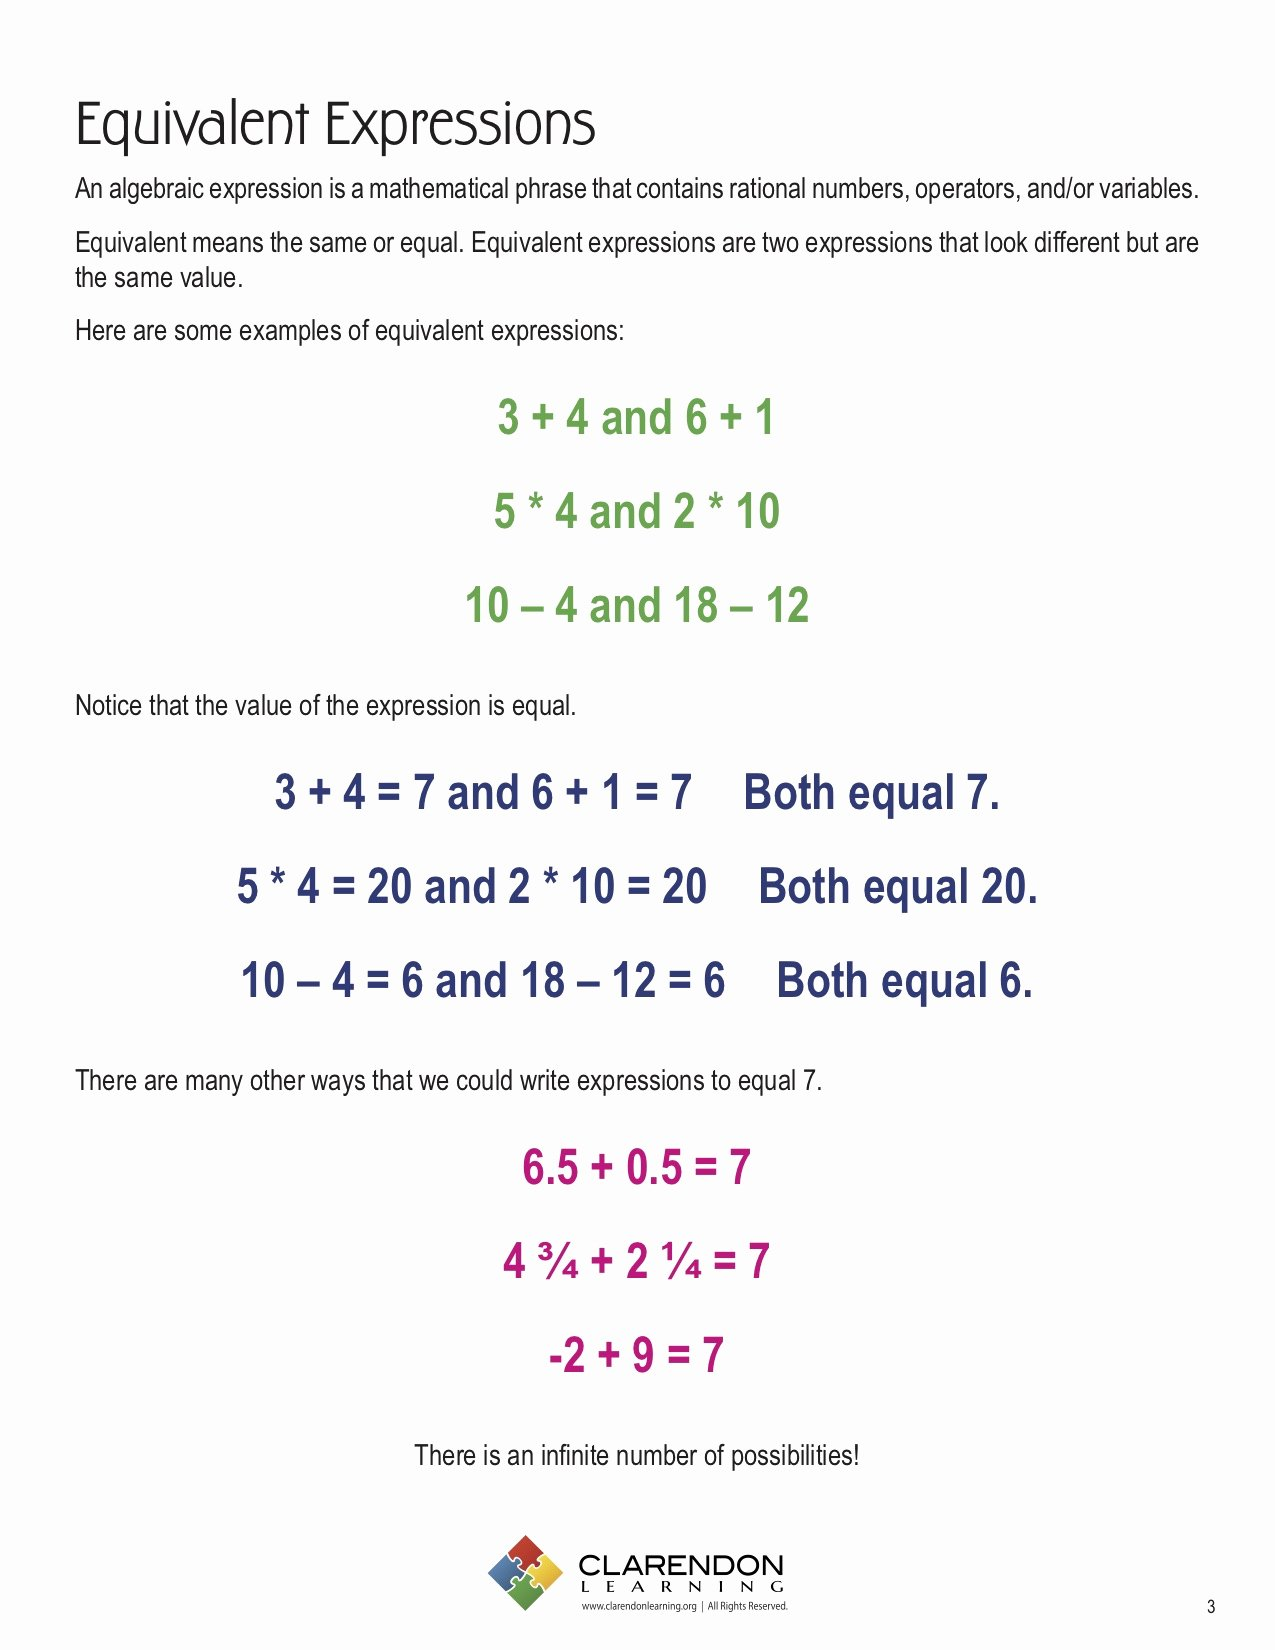 Equivalent Expressions Worksheet 6th Grade Kids Identify Equivalent Expressions Worksheet